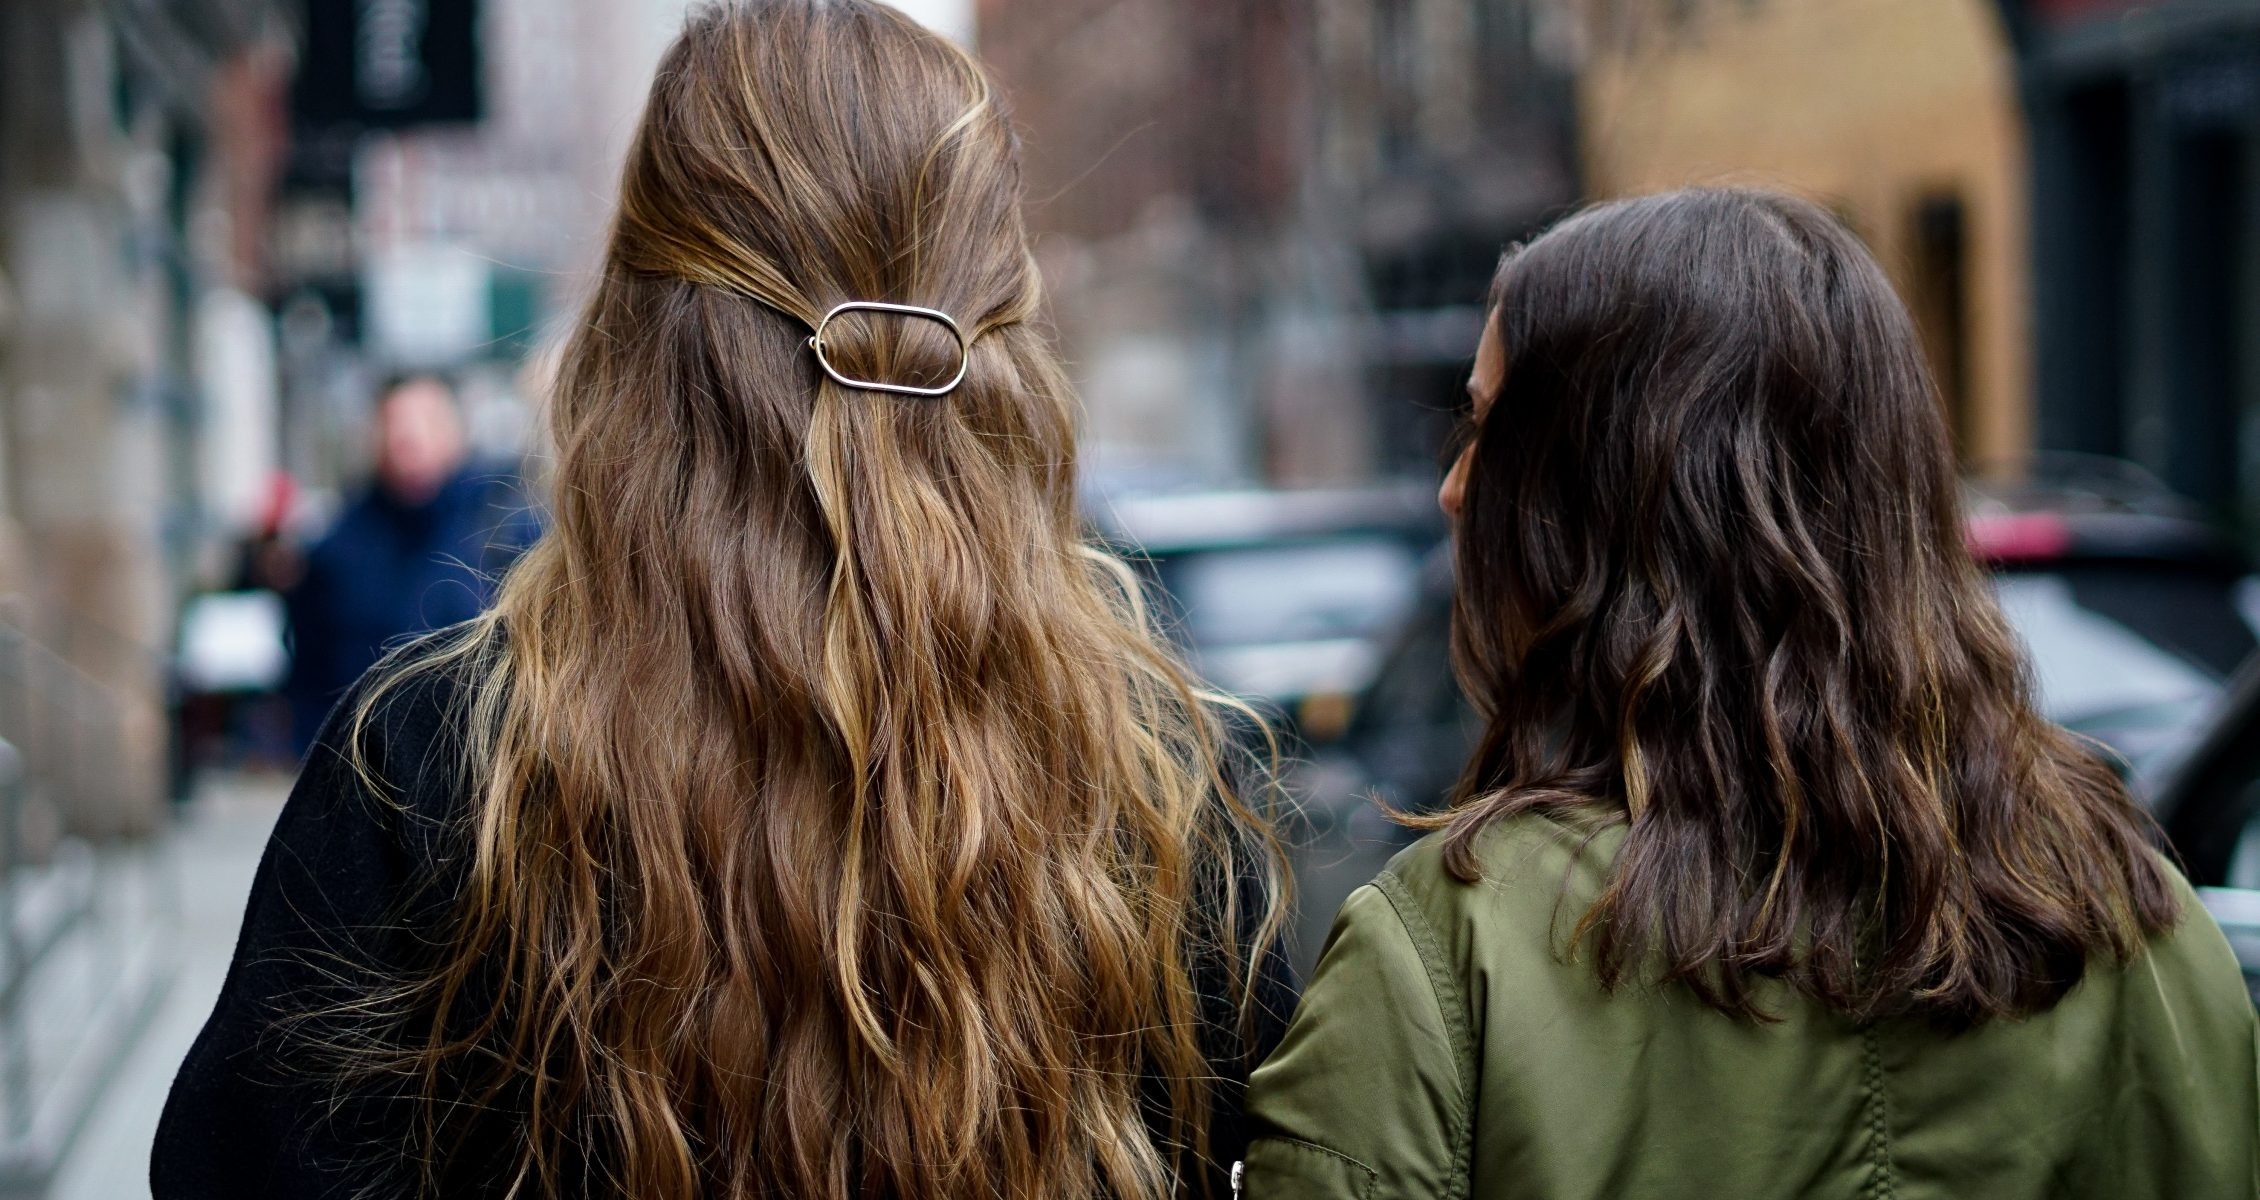 two women walk down an NYC street on a winter day with their backs faced to the camera and jackets on